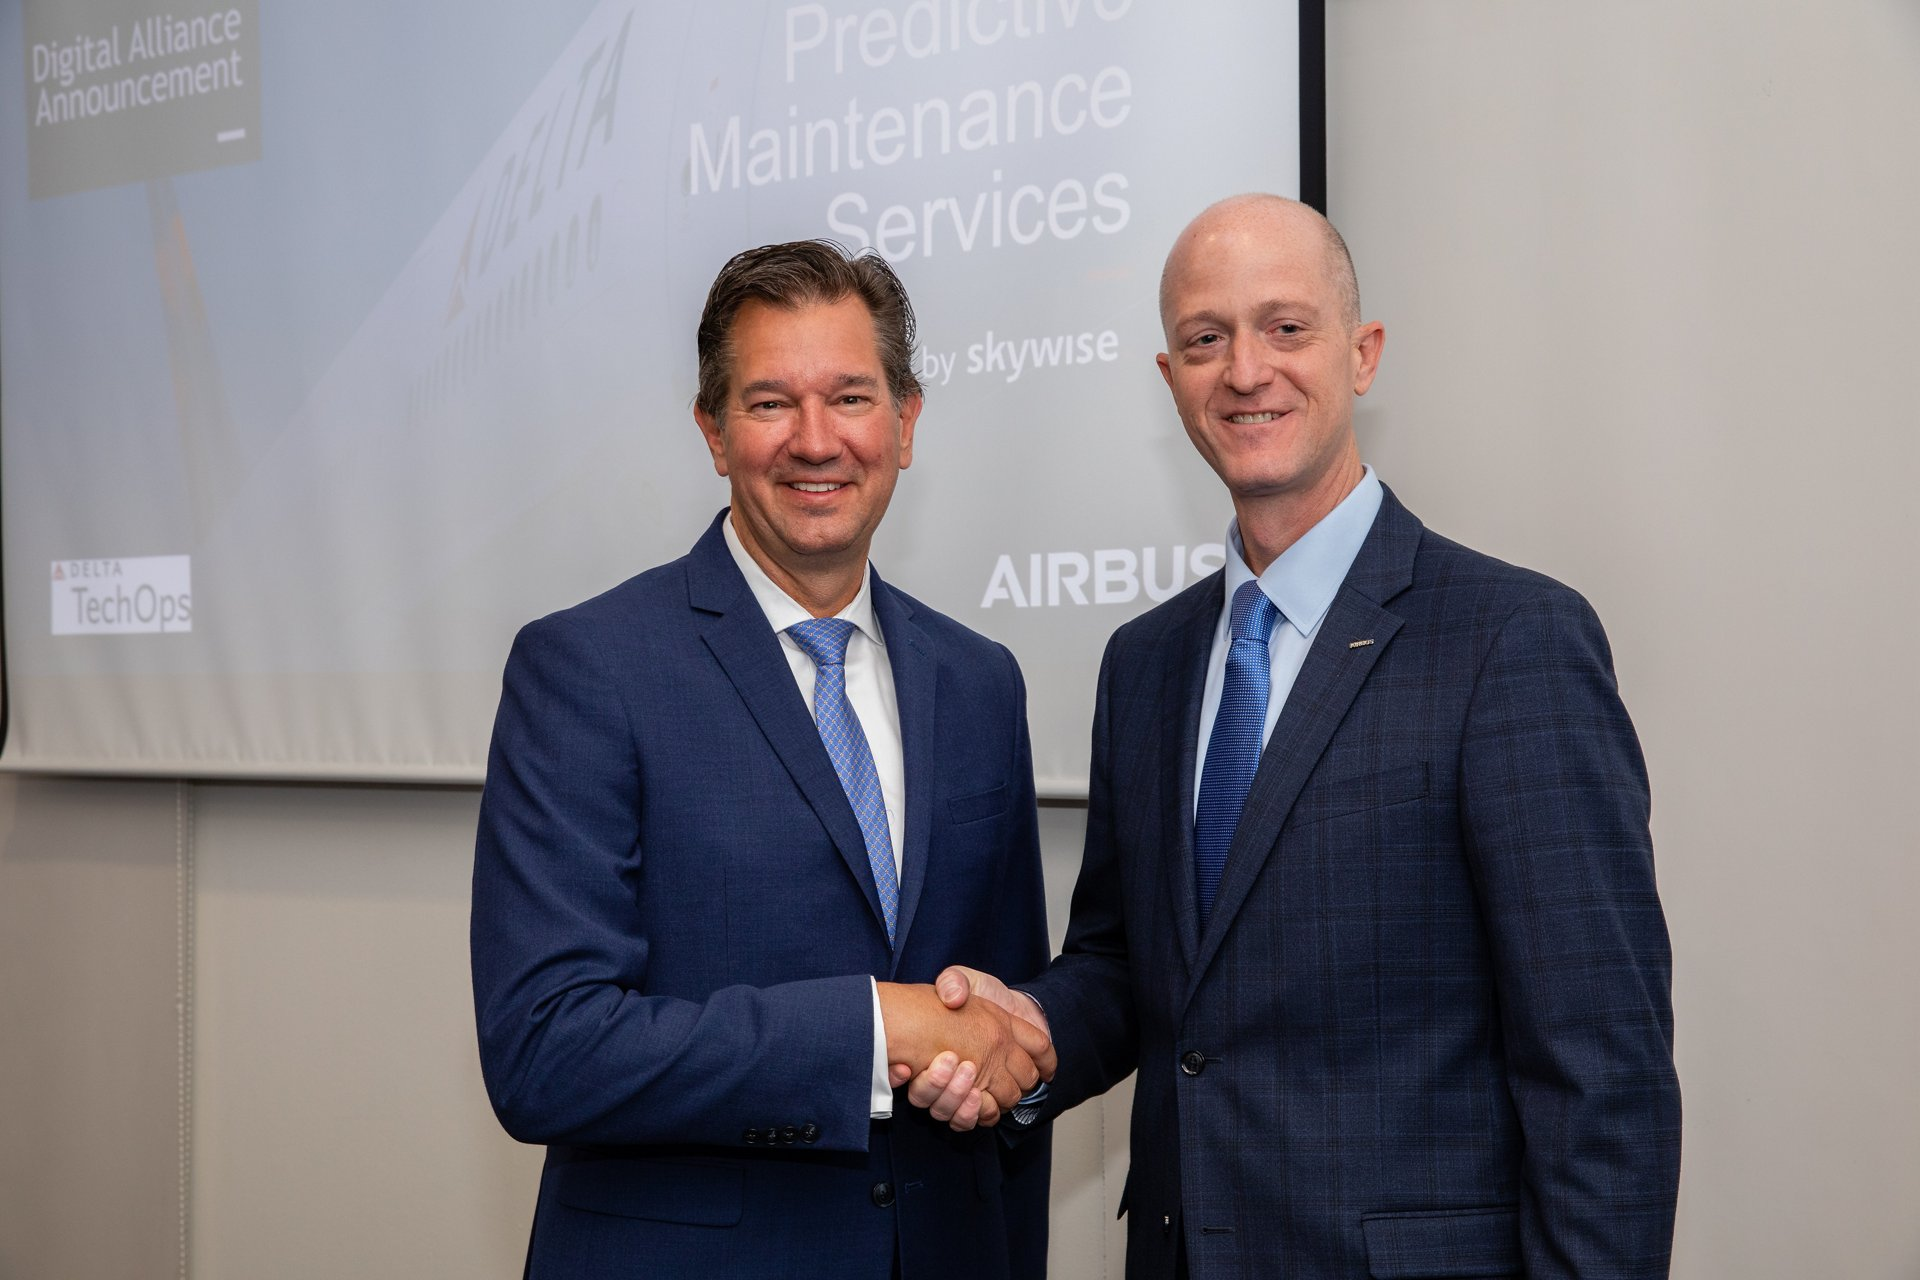 Don Mitacek - Delta's SVP Technical Operations, and Norman Baker - Airbus SVP Digital Solutions